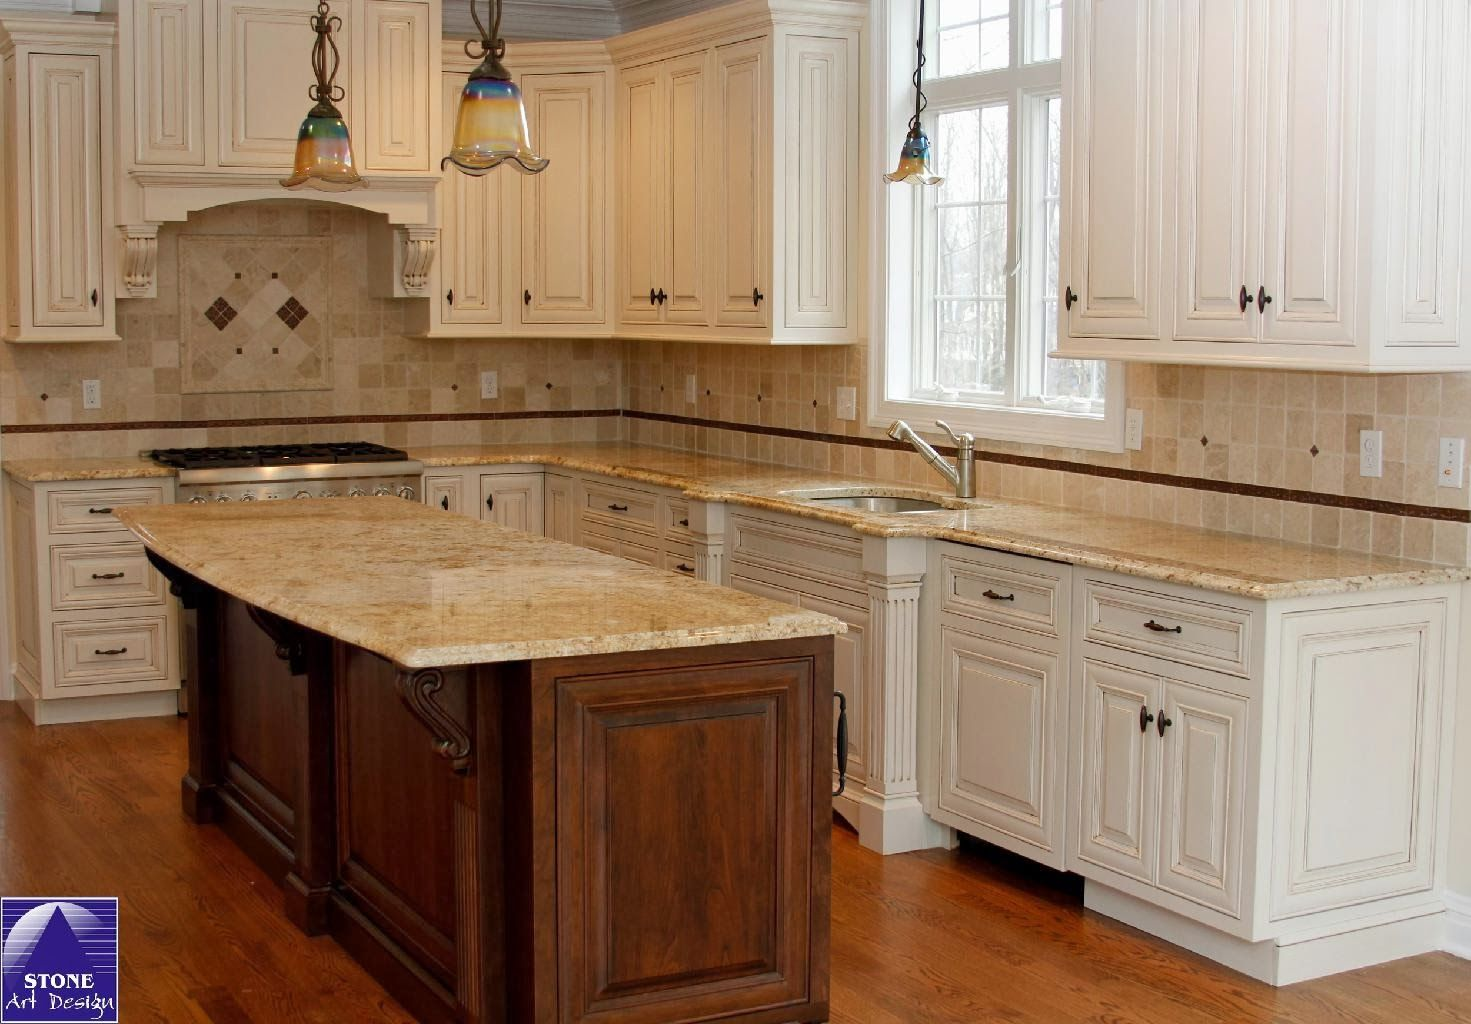 Kashmir Gold Slab Granite shown with a cream colored cabinet ...